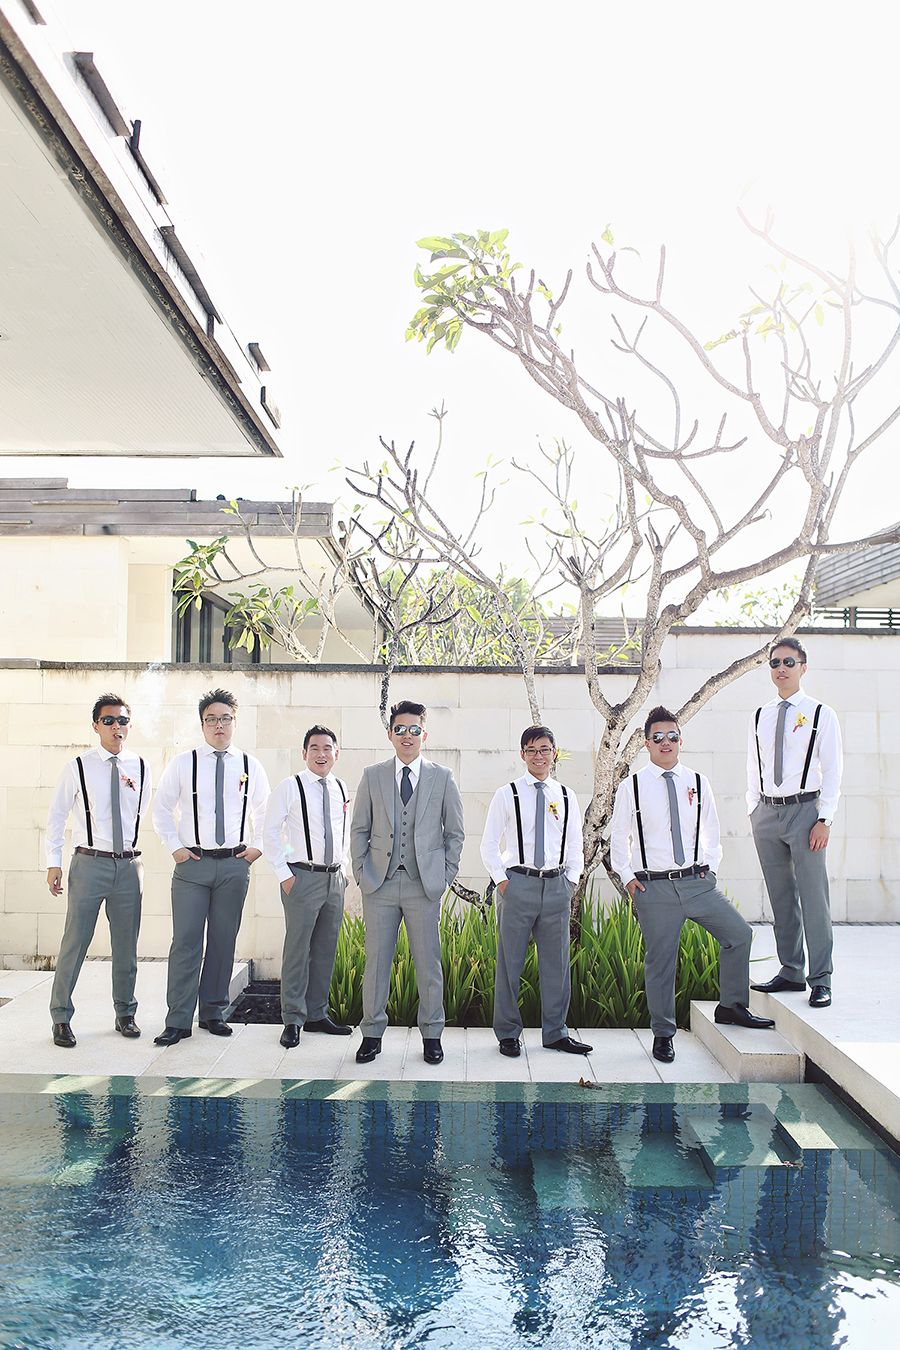 Groomsmen in grey and suspenders // Ronald and Evelyn's Colourful Wedding With Chinoiserie Touches